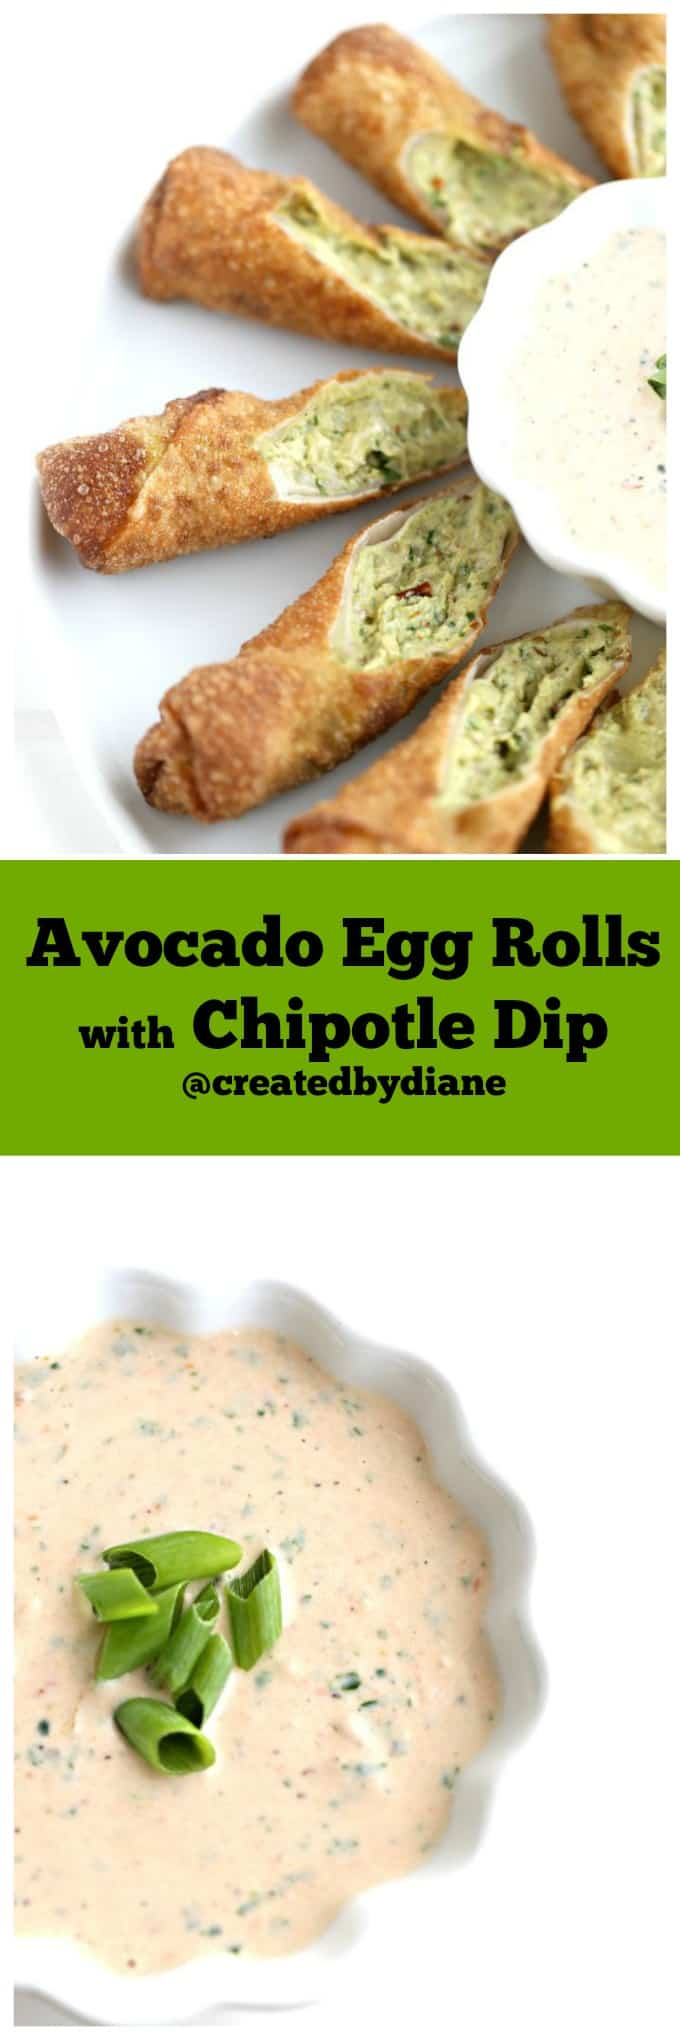 Avocado Egg Rolls with Chipotle Dip @createdbydiane